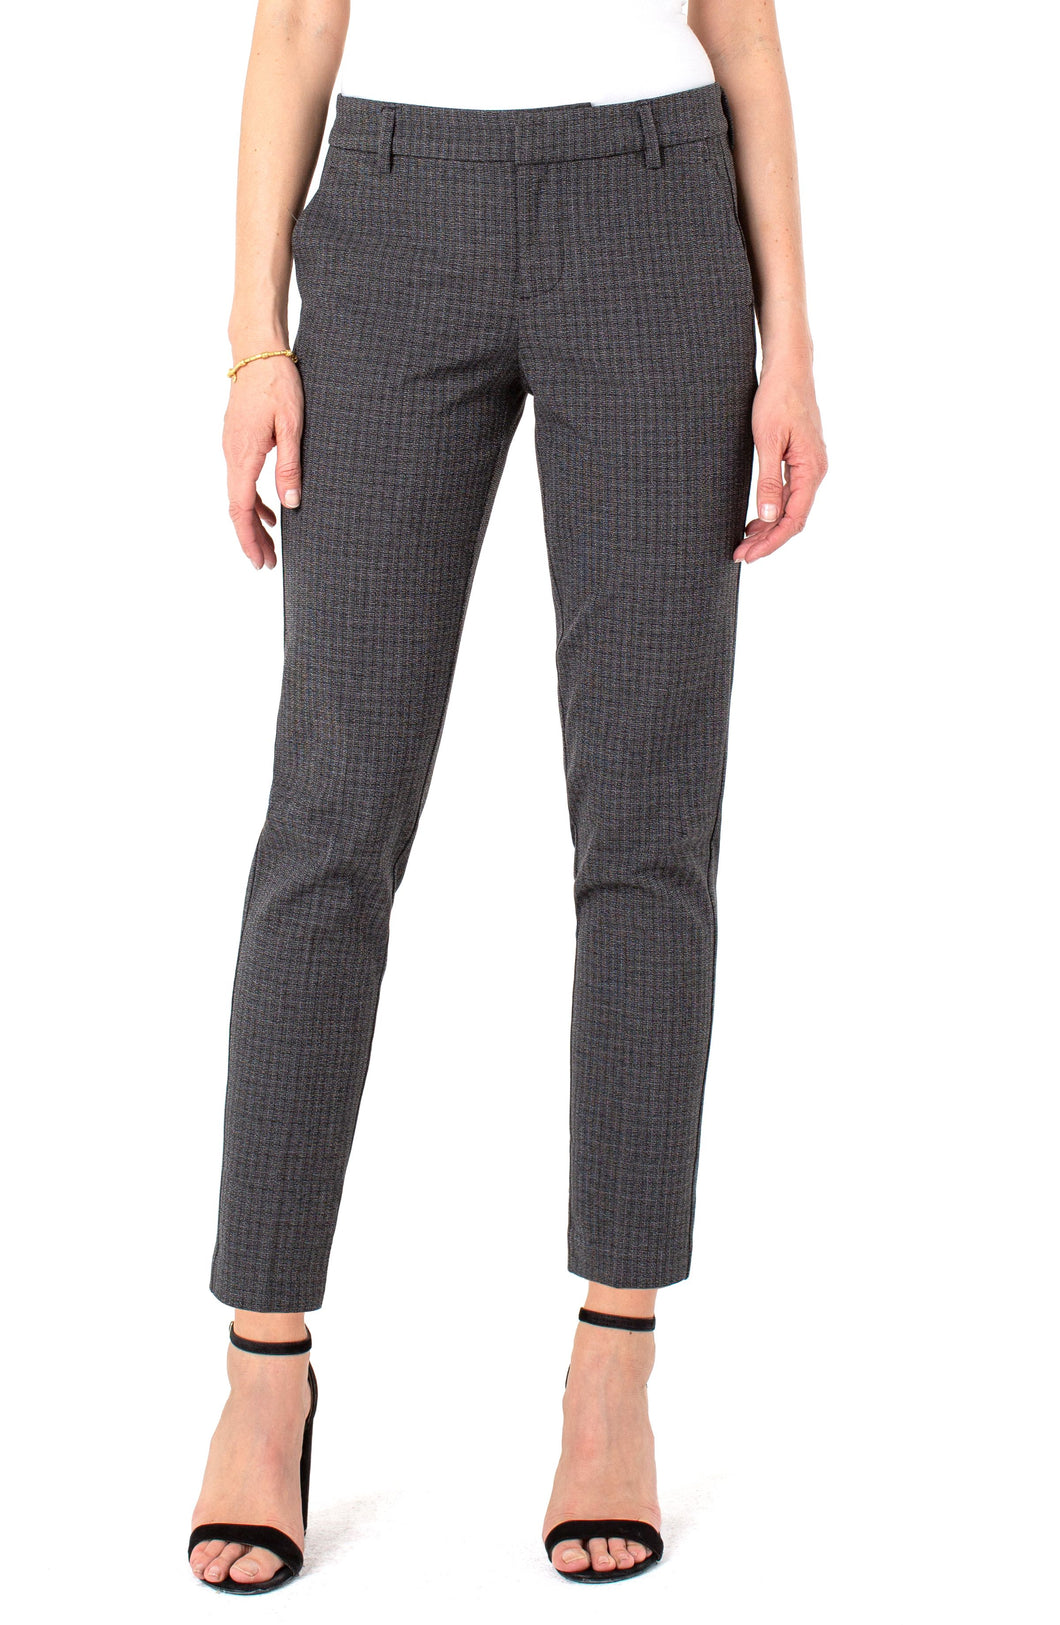 Liverpool Kelsey Knit Trouser (grey/black check)